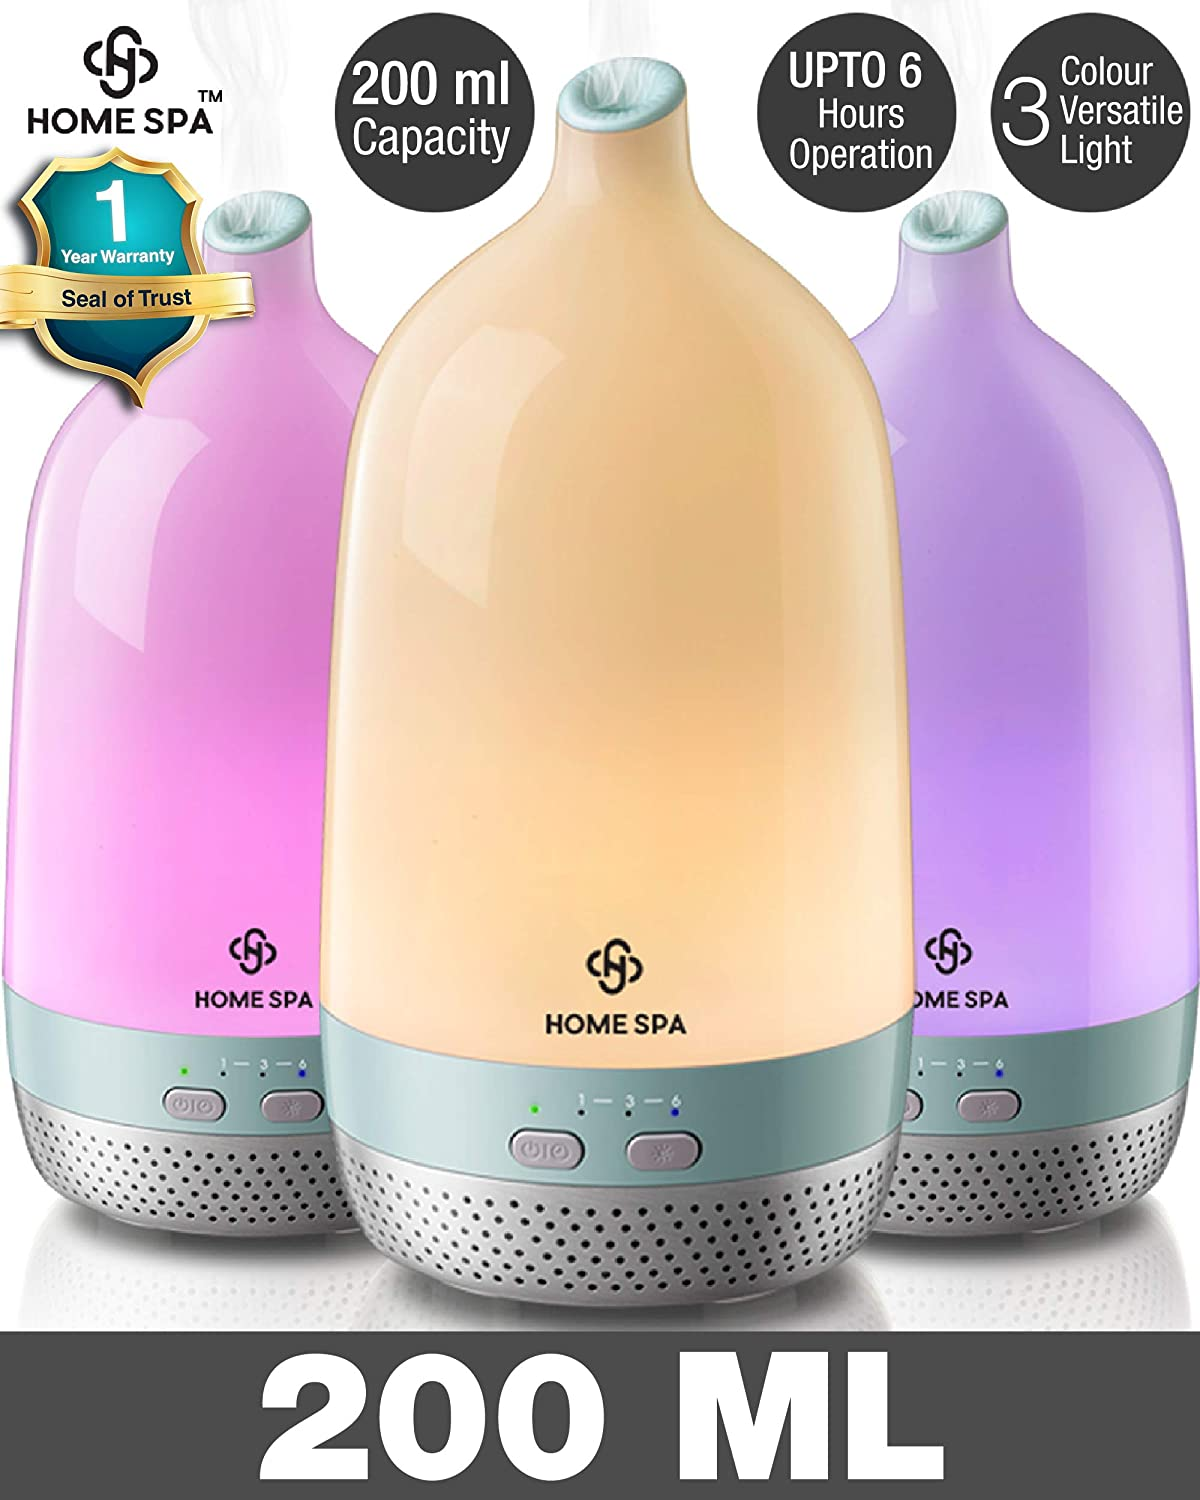 Dr. Trust Home Spa Luxury Cool Mist Aroma Oil Diffuser and Humidifier